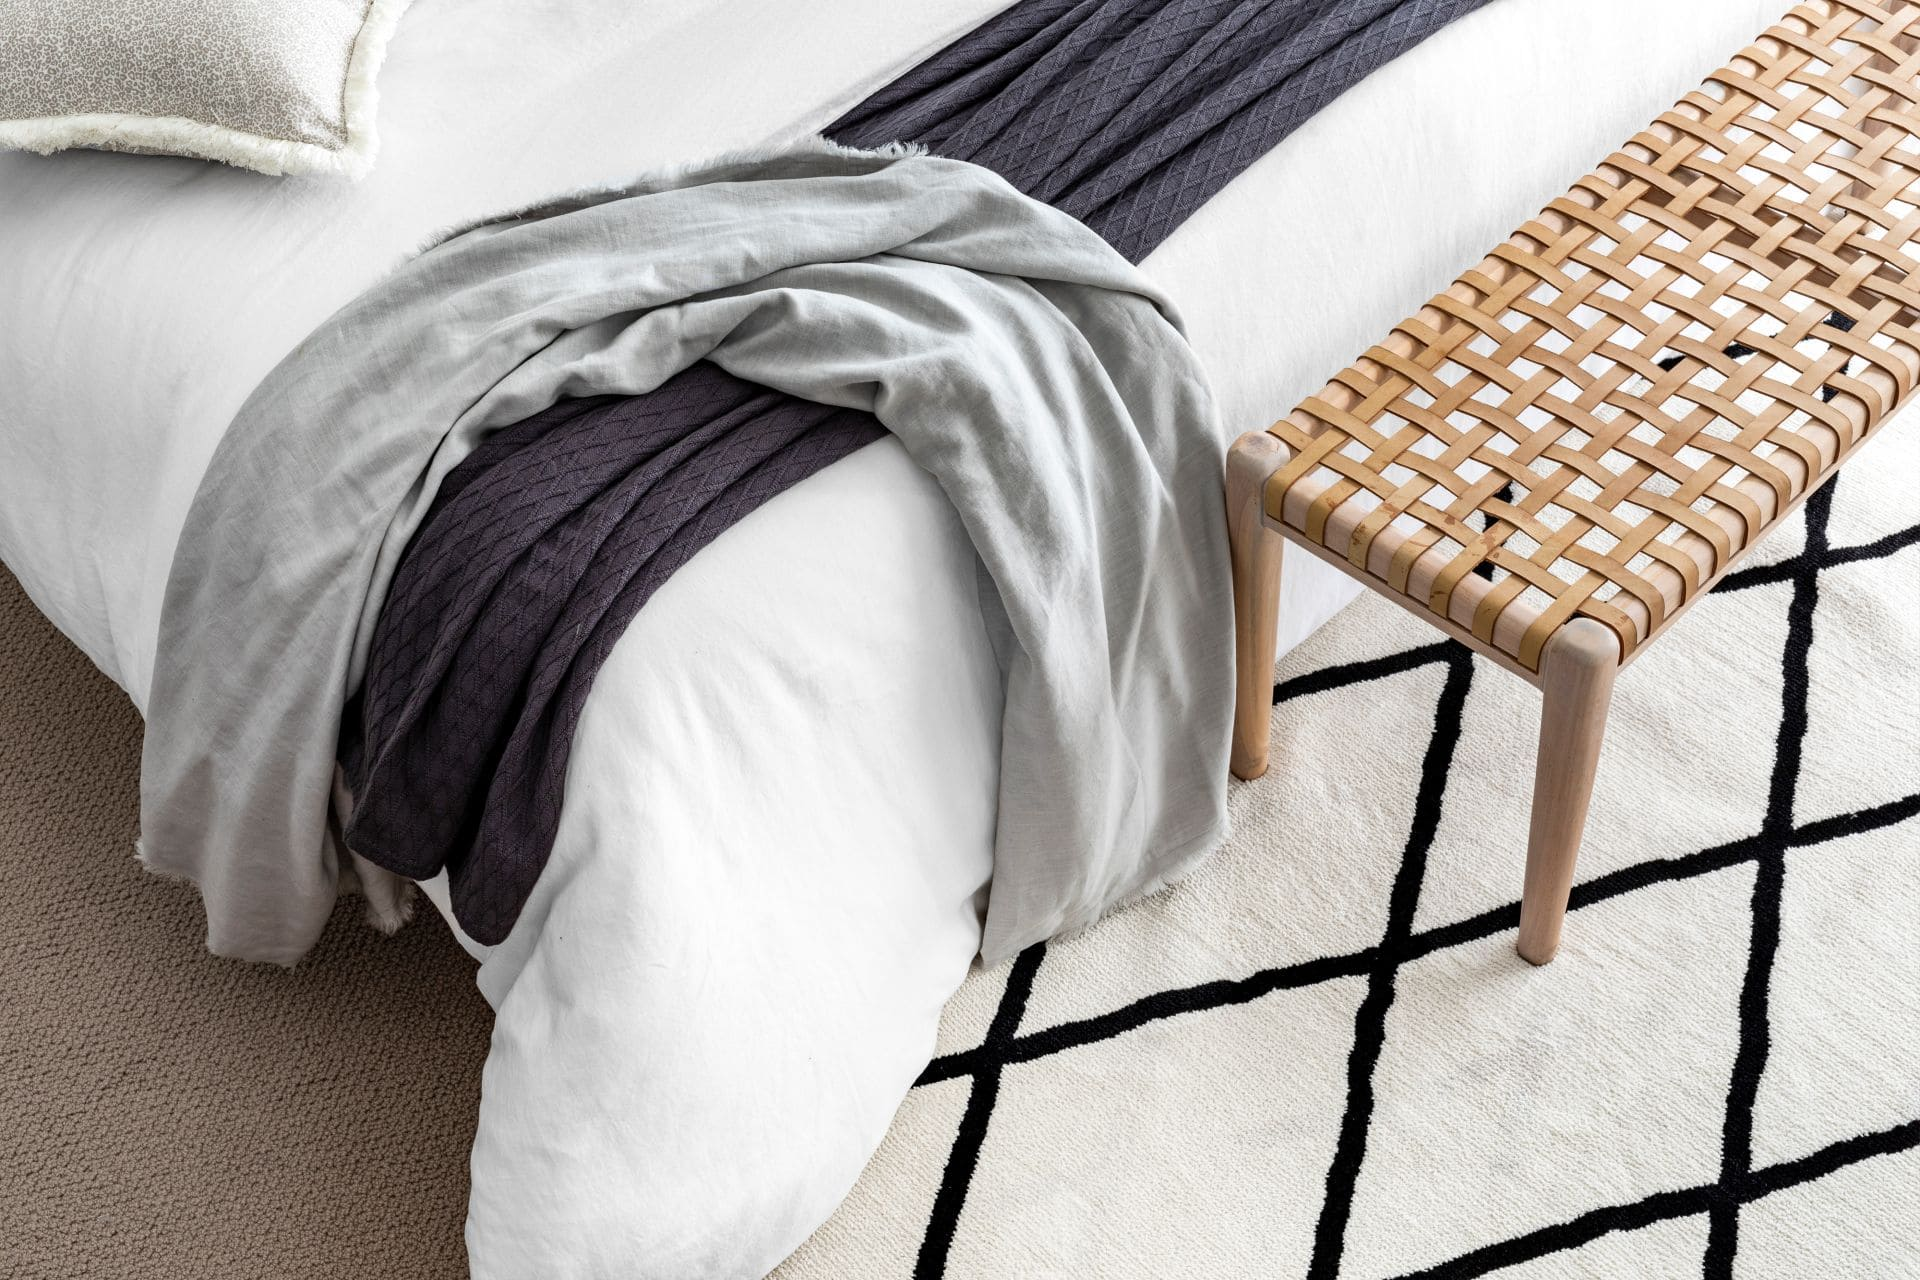 diamond floor rug in bedroom with woven leather bench seat at end of bed